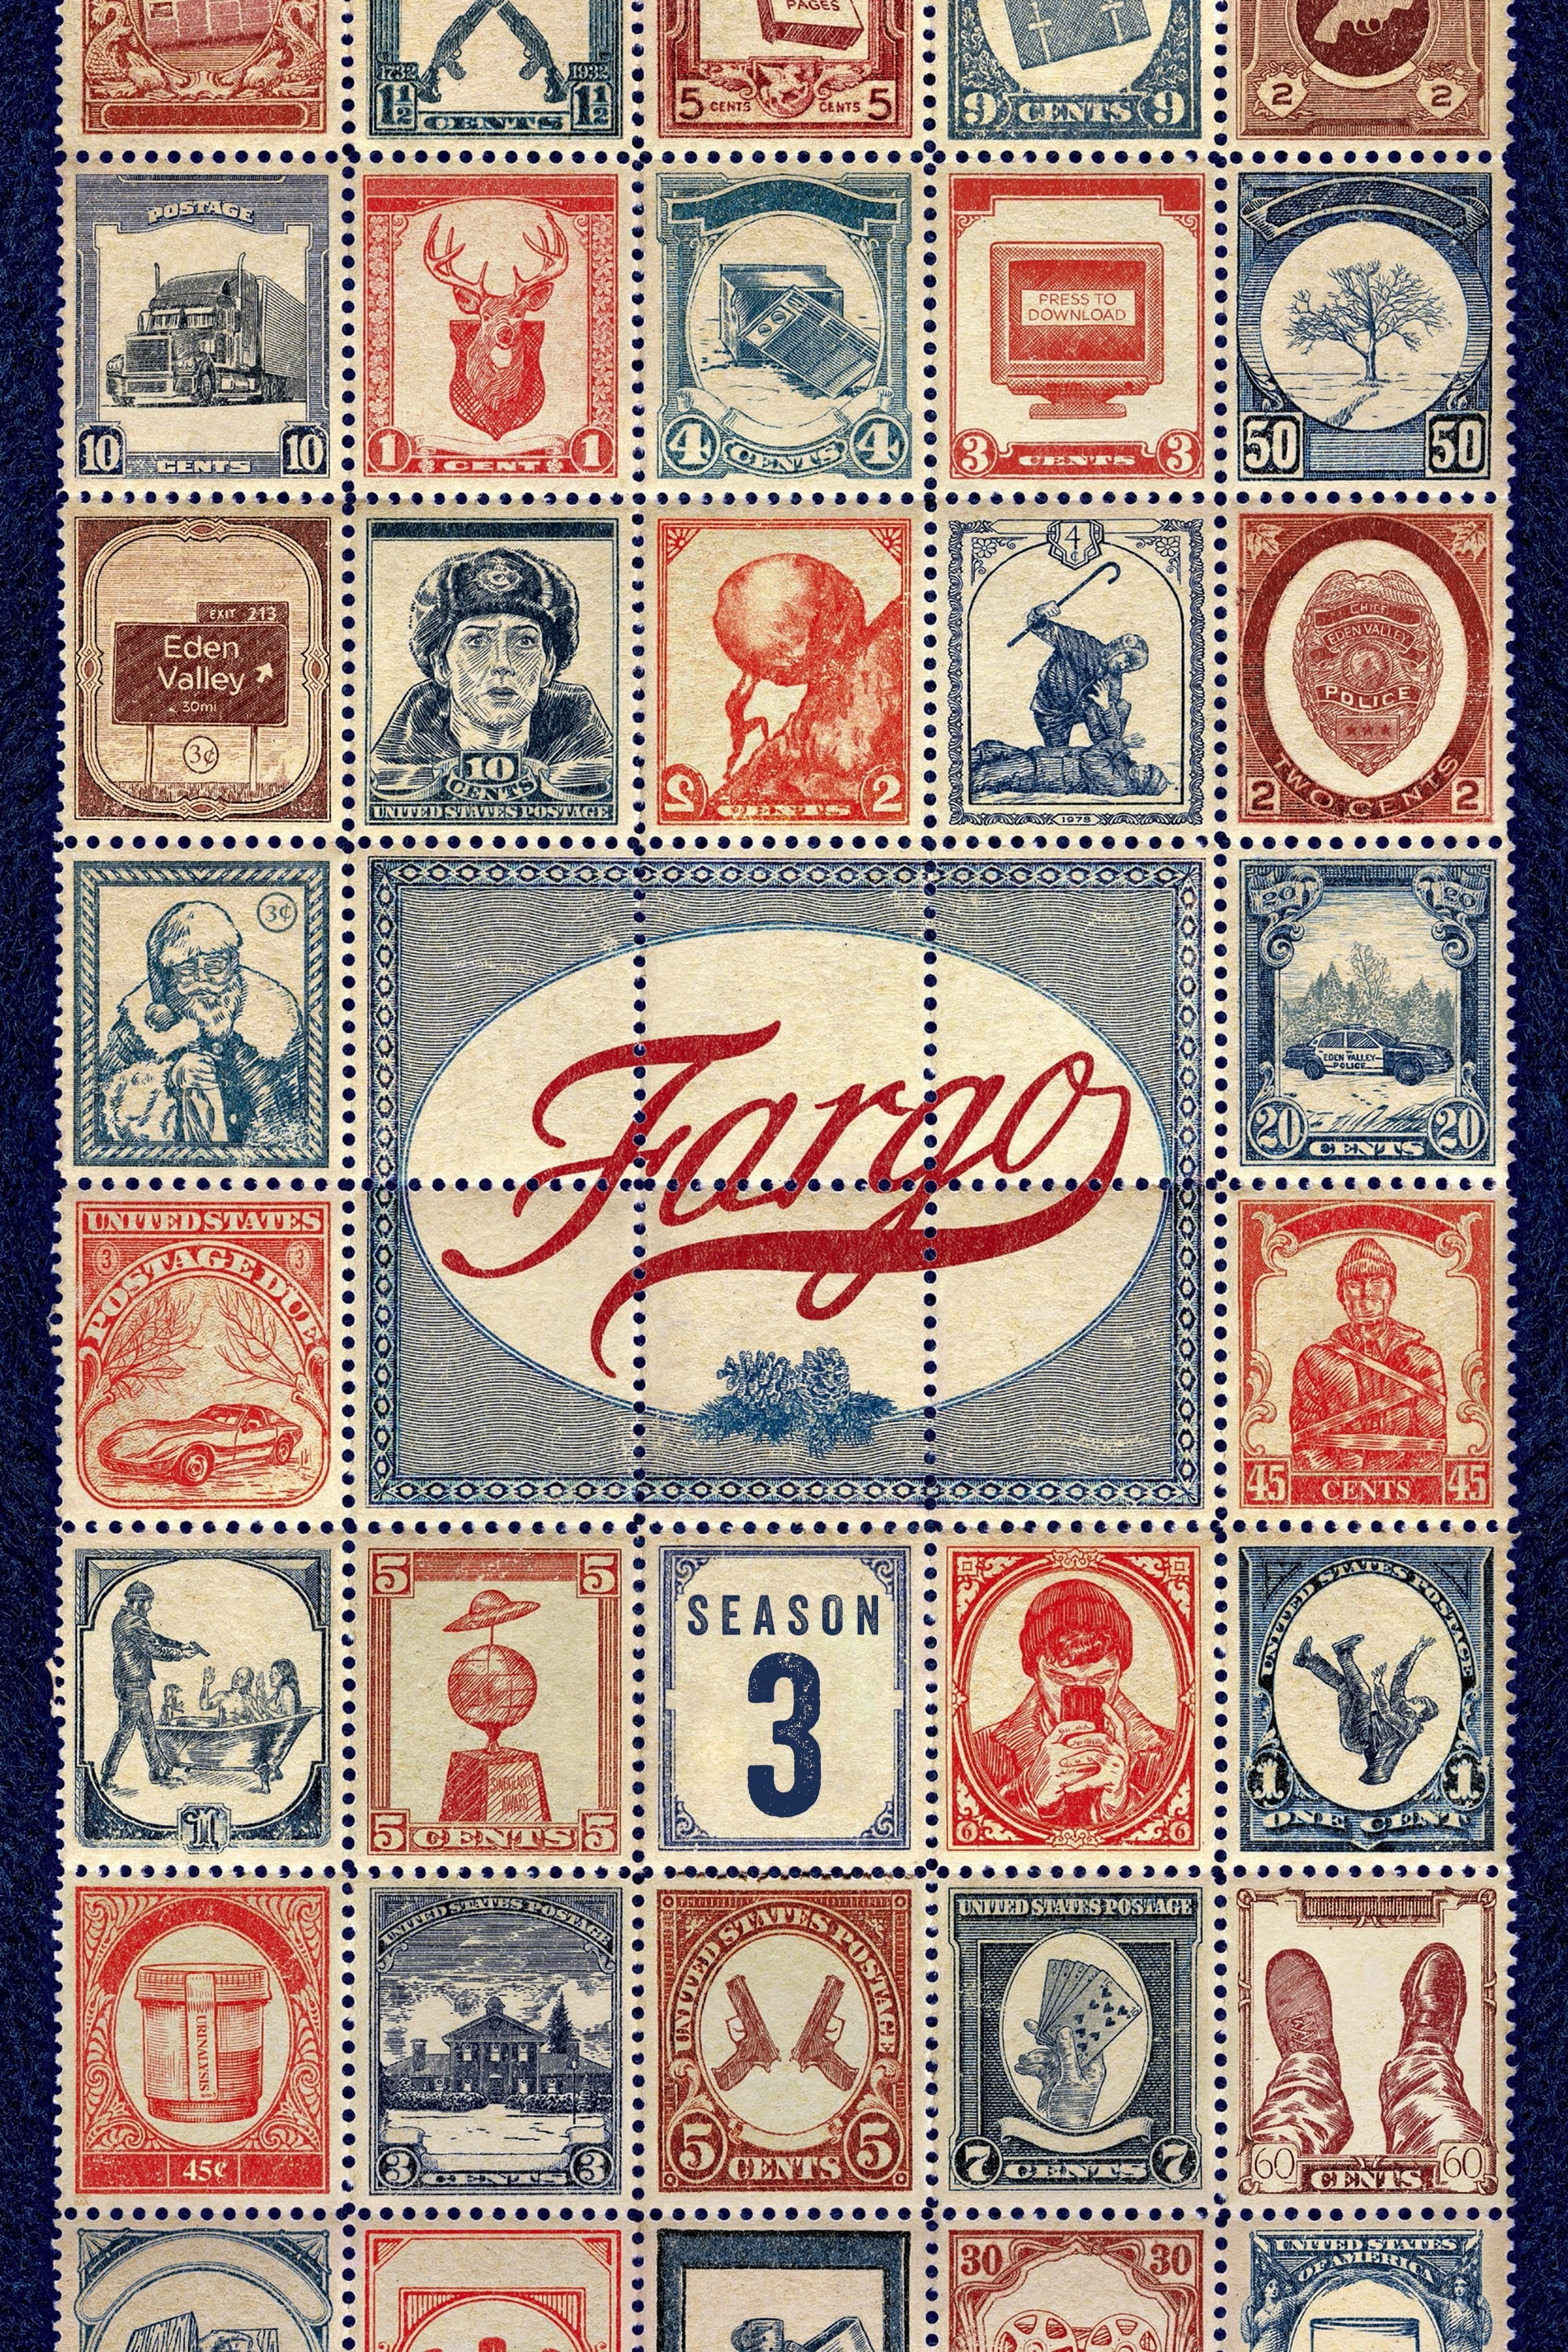 FARGO SEASON 3 123movies